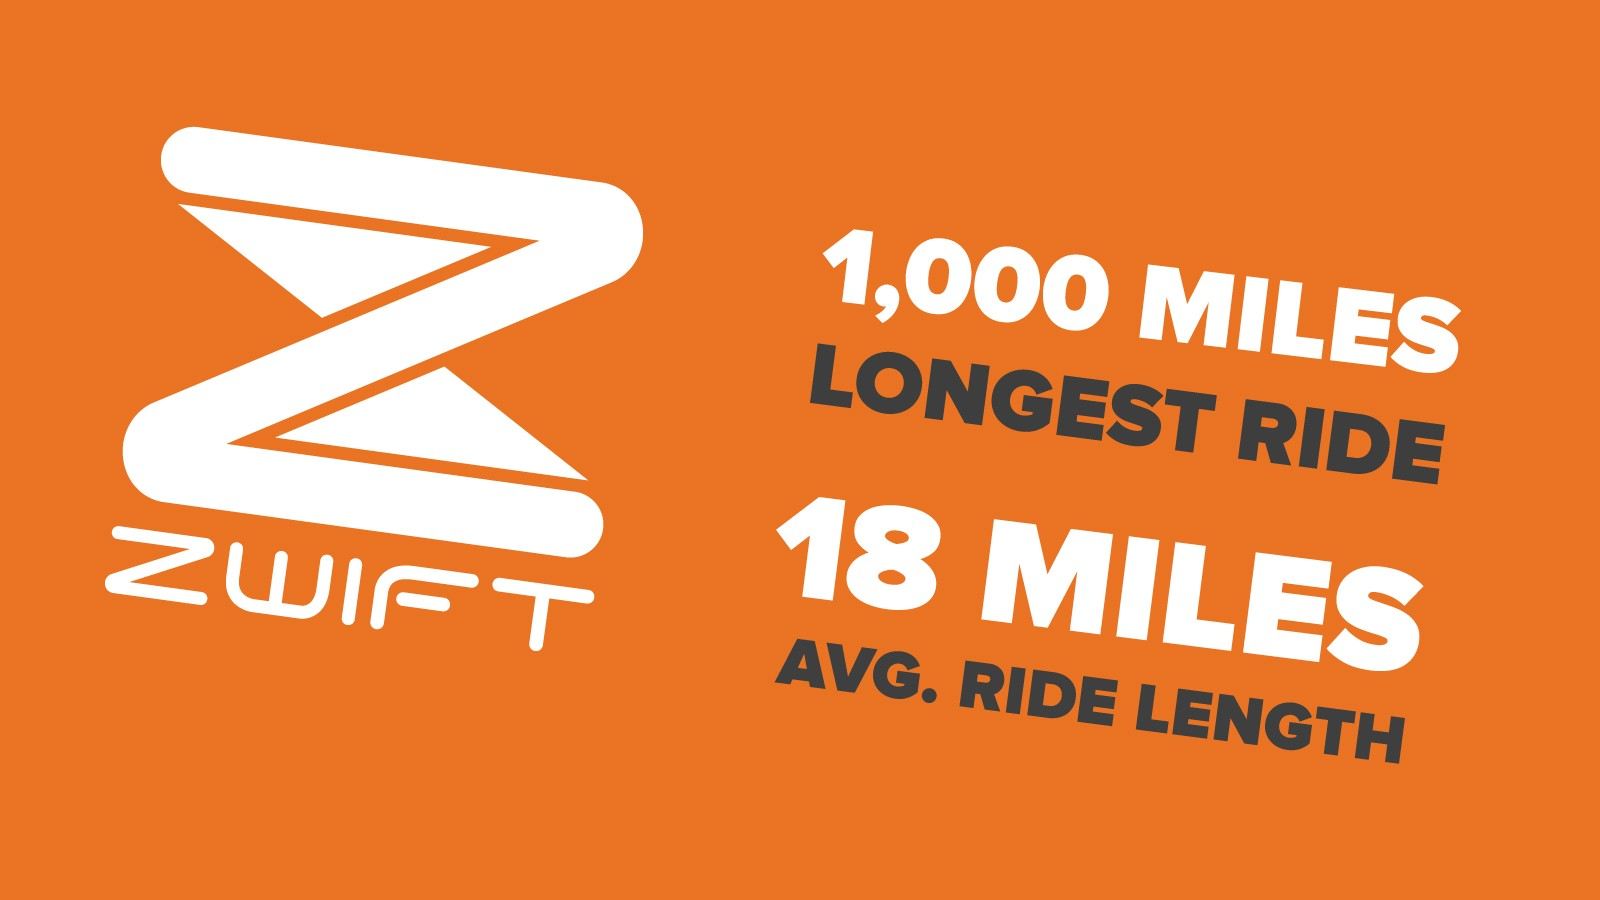 Zwift statistics for January 2016 – users averaged 18 miles per ride